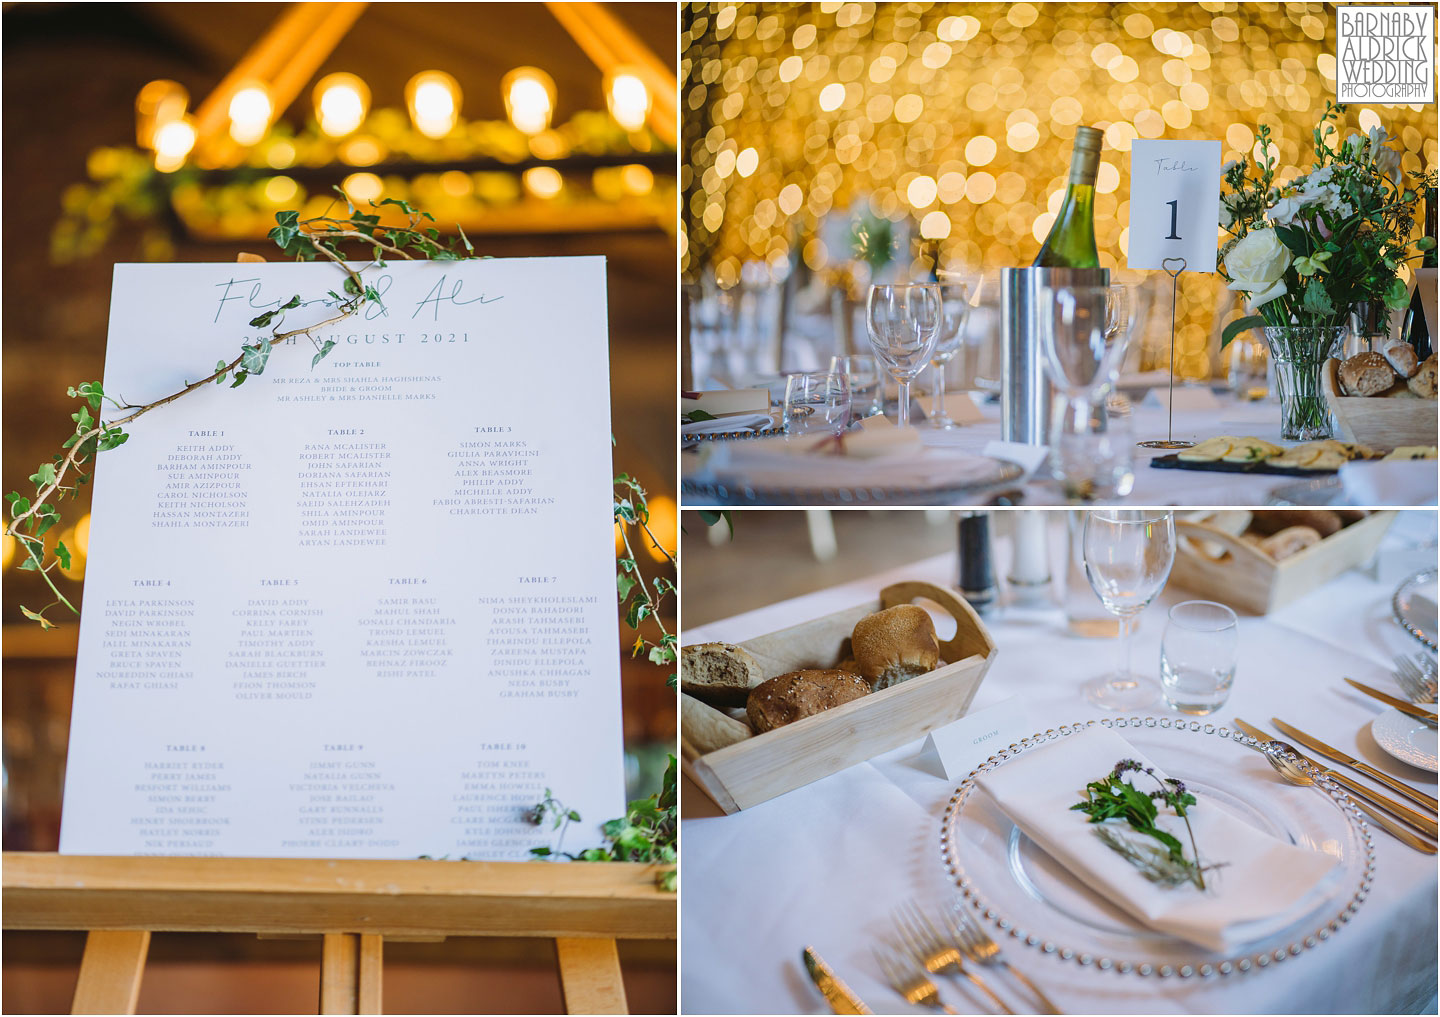 The Wedding Breakfast Barn table details at Hornington Manor, Wedding band at Hornington Manor, Hornington Manor Wedding Photography, Hornington Manor Wedding Photographer, Yorkshire Wedding, Yorkshire Wedding Photographer, York Luxury Barn Wedding Venue, Yorkshire farmhouse Wedding Barn